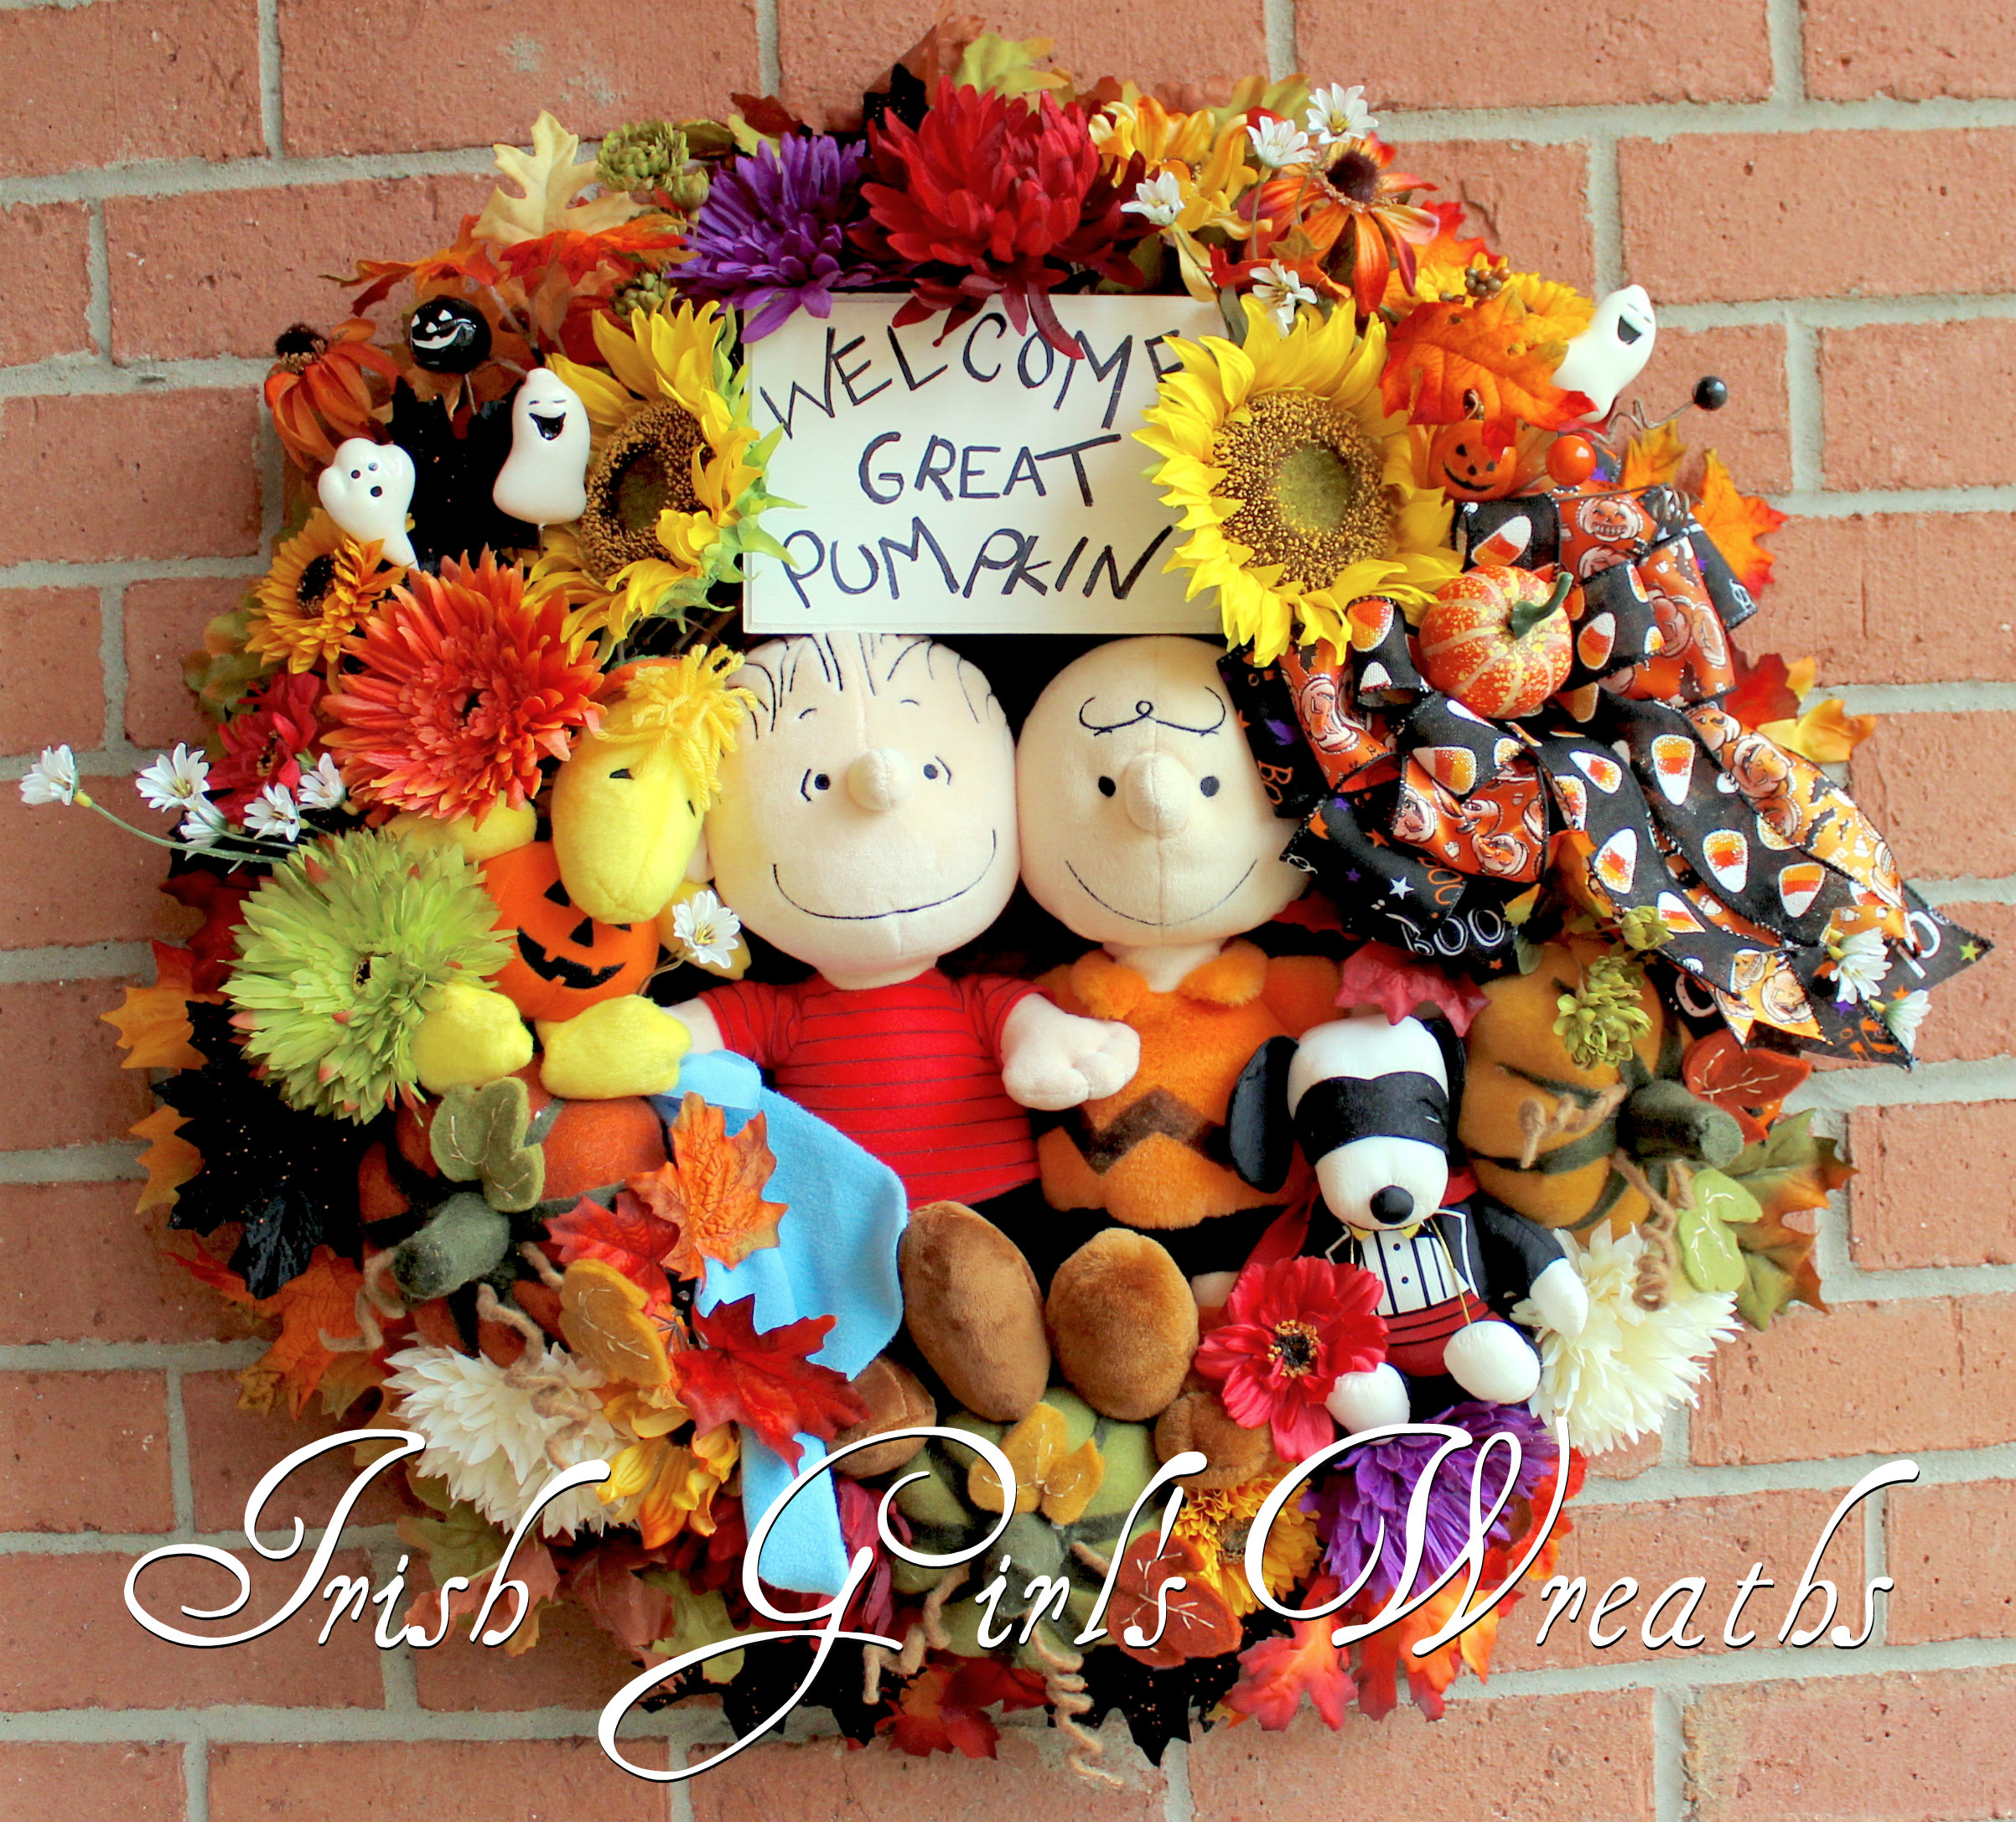 Great Pumpkin Charlie Brown Halloween Wreath, for Kathi